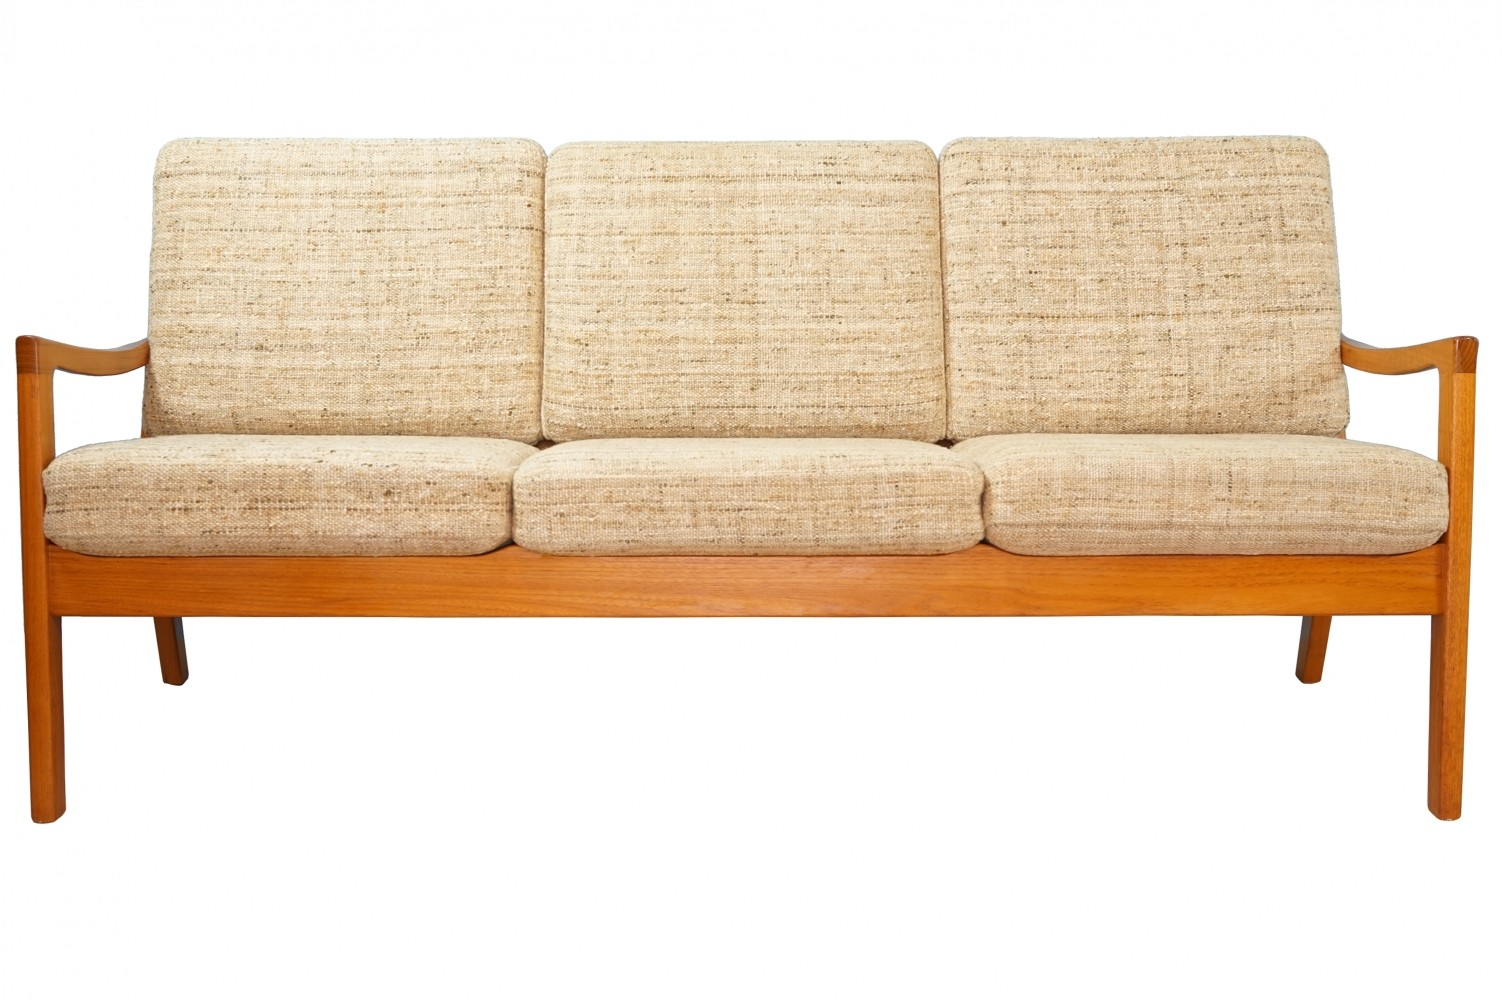 Three-seat teak sofa by Ole Wanscher for Poul Jeppesen